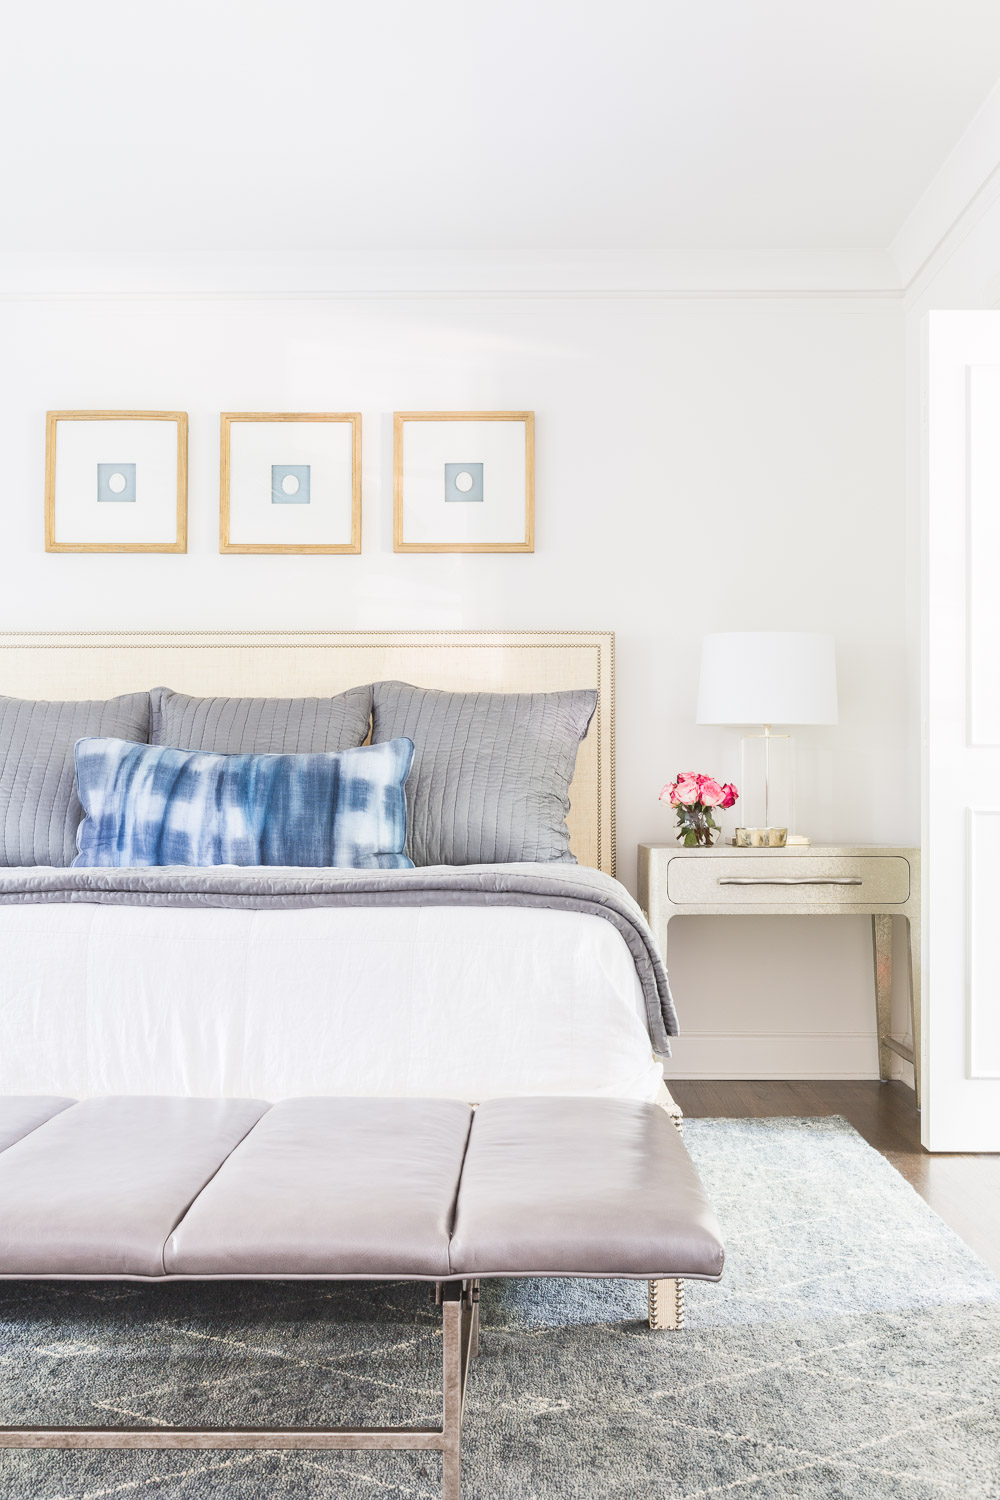 How to Decorate Above A Bed - Row of Frames